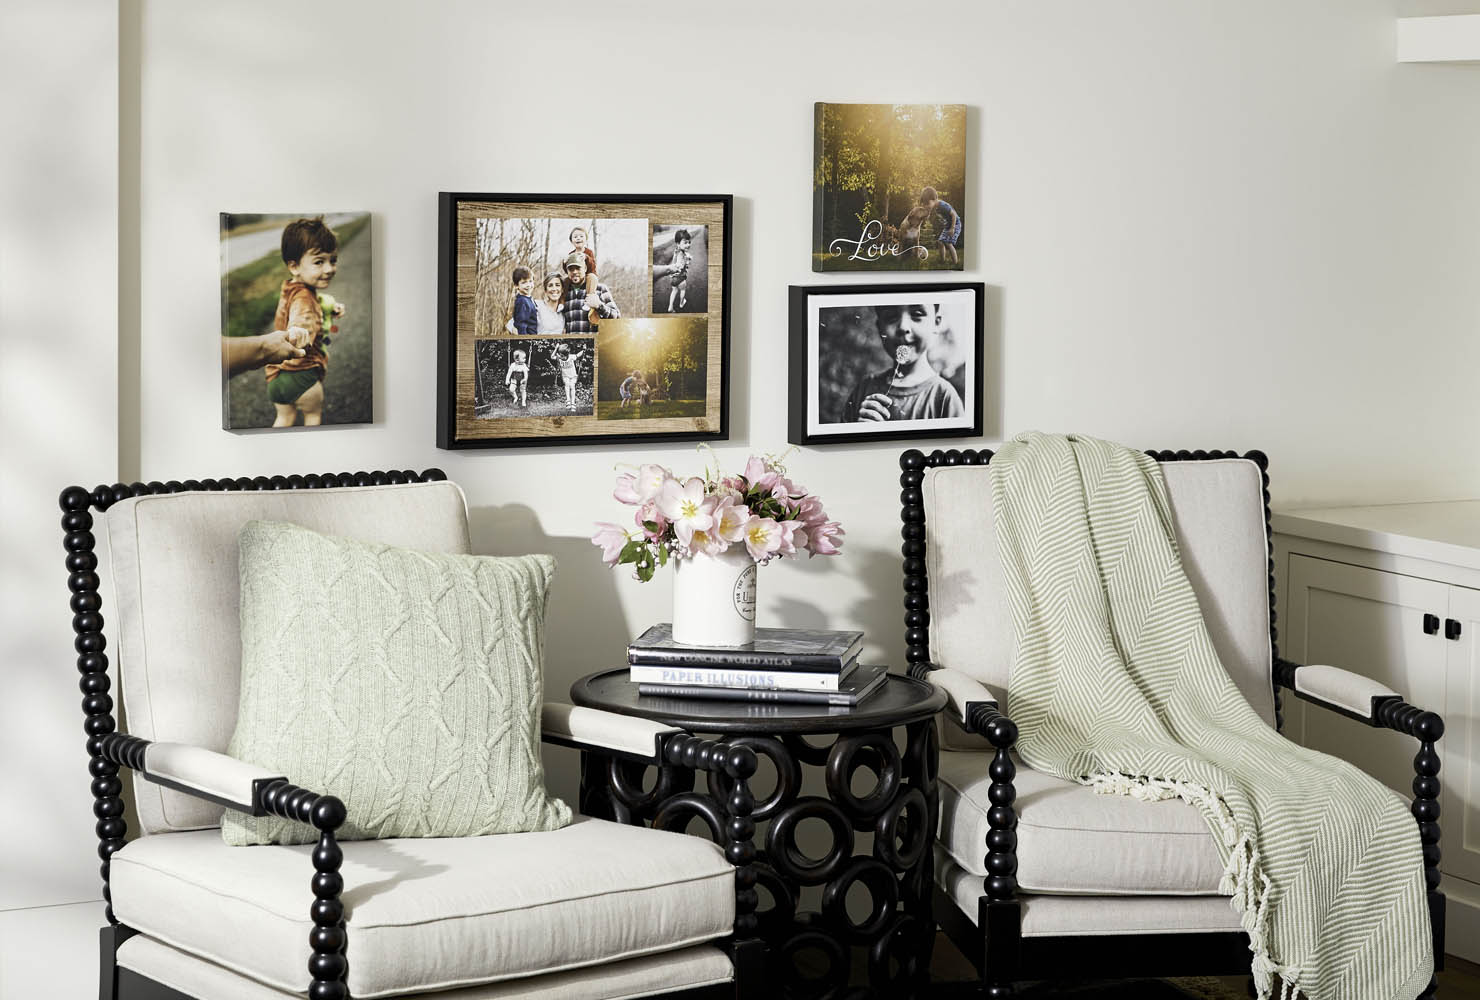 Framed prints hanging over chairs.